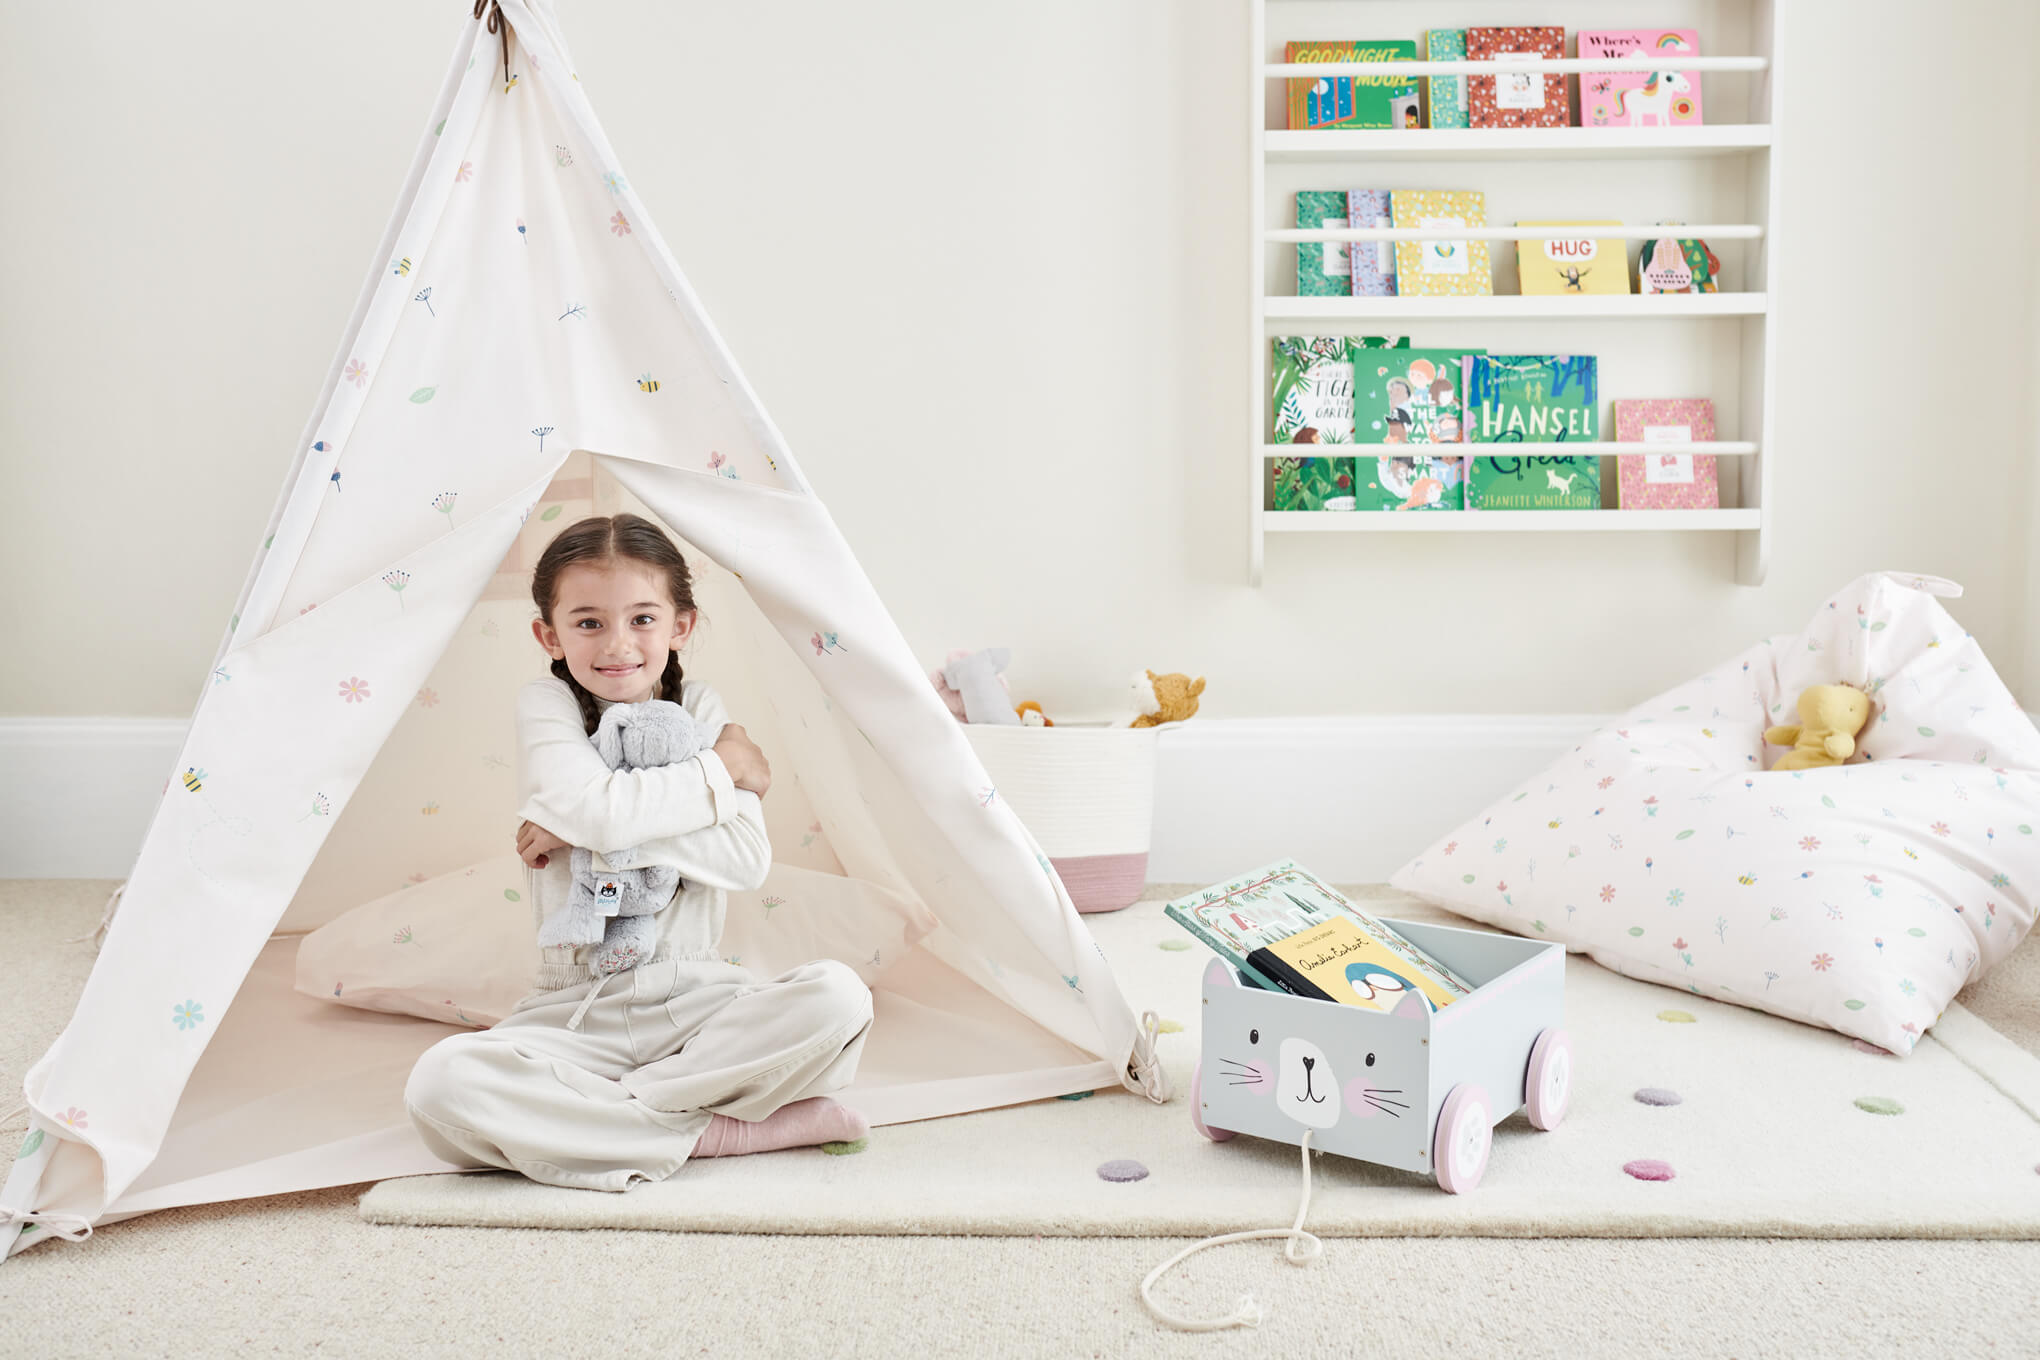 Buzzy Blooms teepee